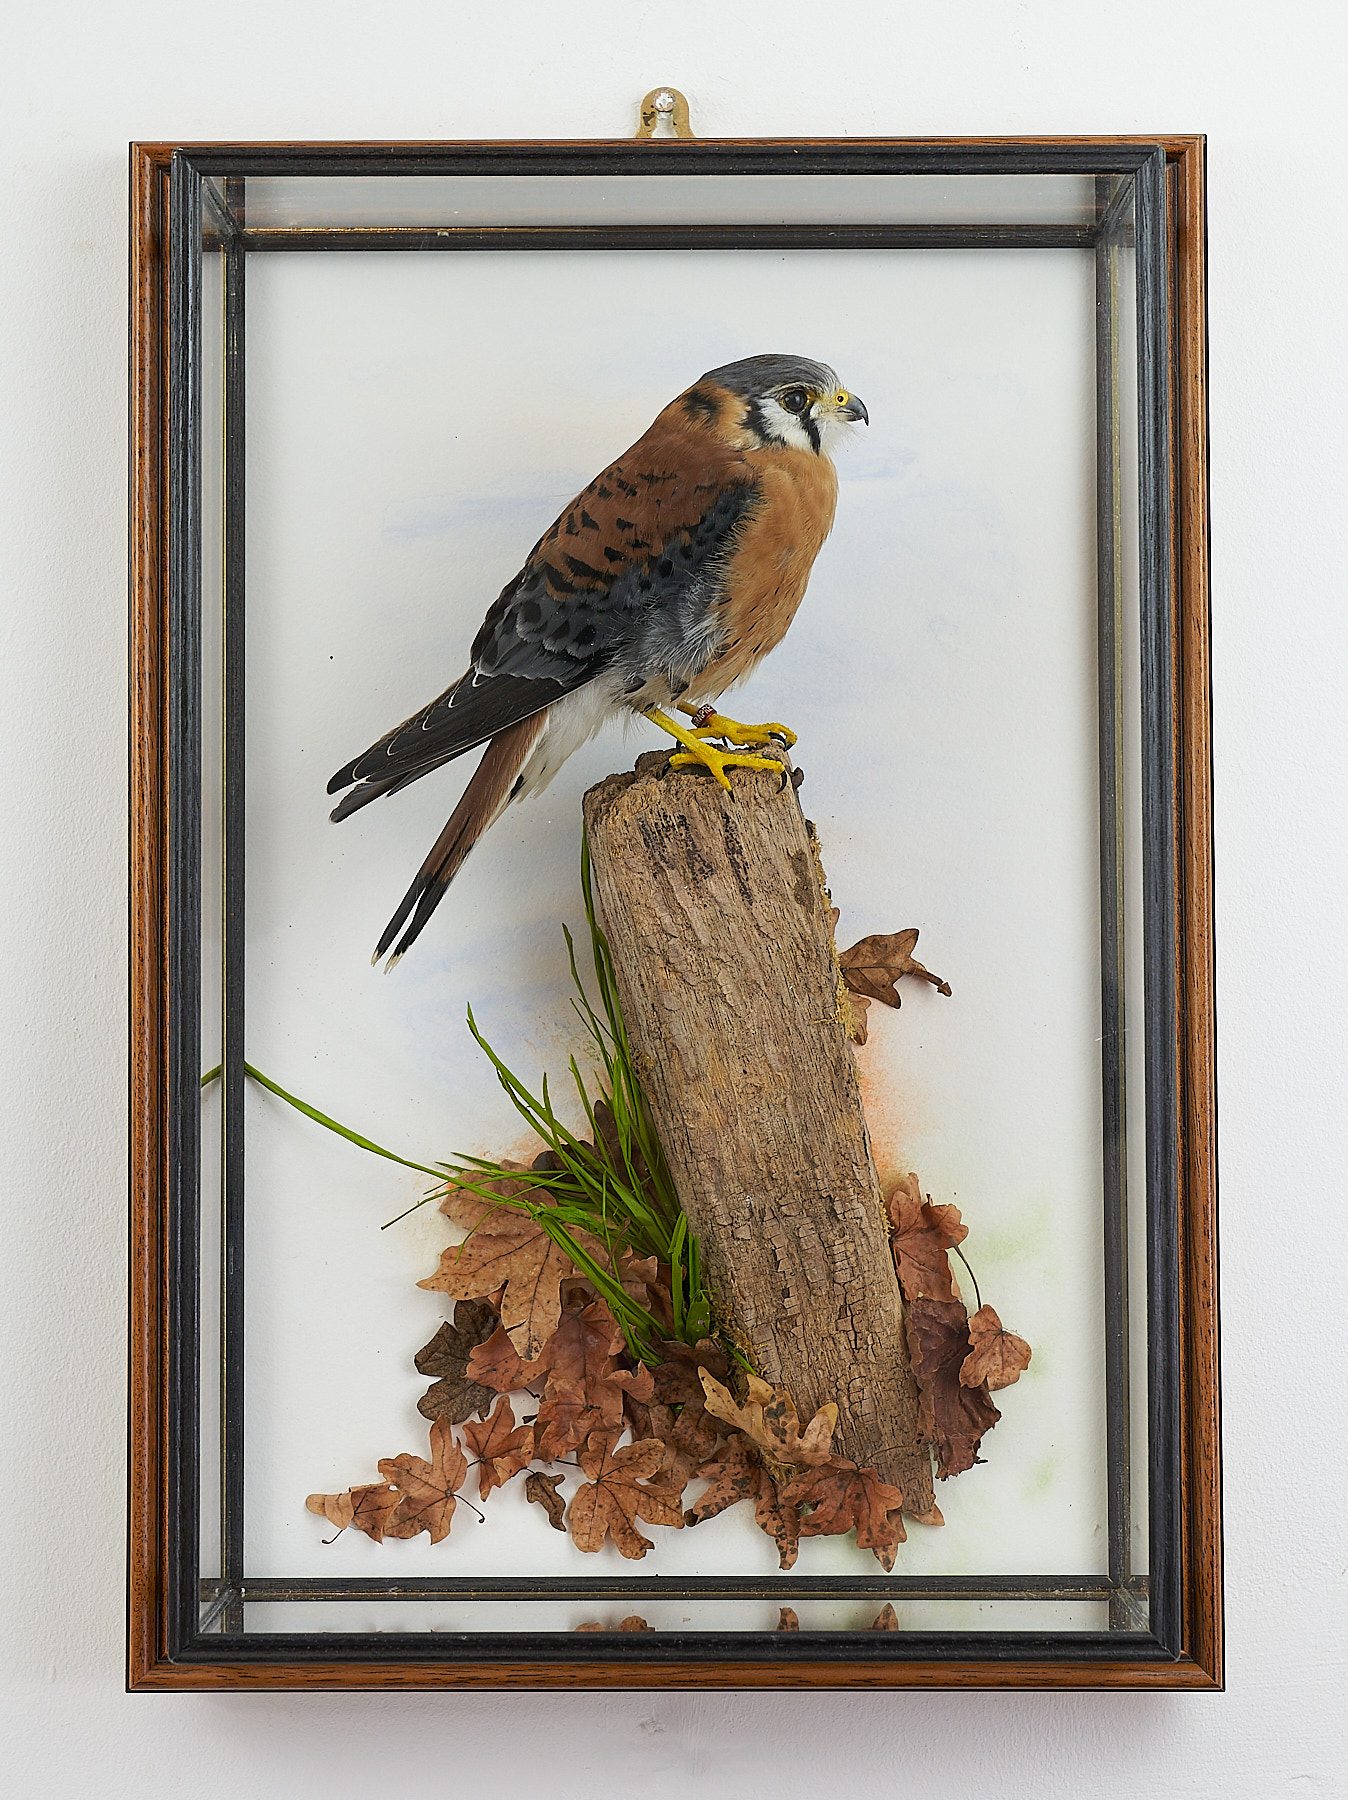 American Kestrel mg8587 | UK Bird Small Mammal Taxidermist ...